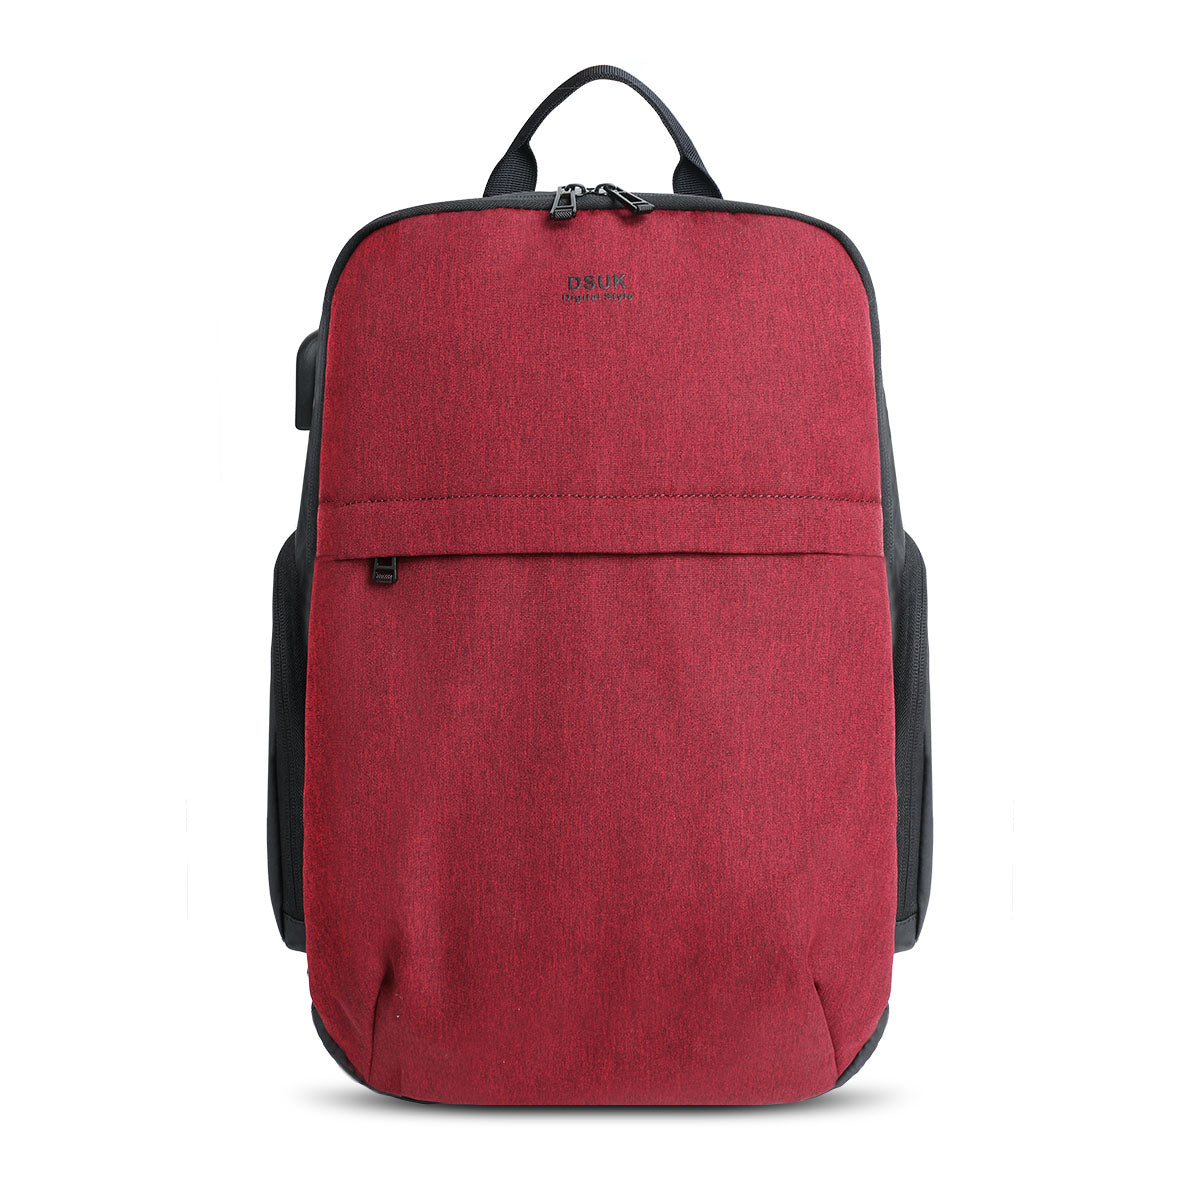 LYDC Laptop Backpack Bag